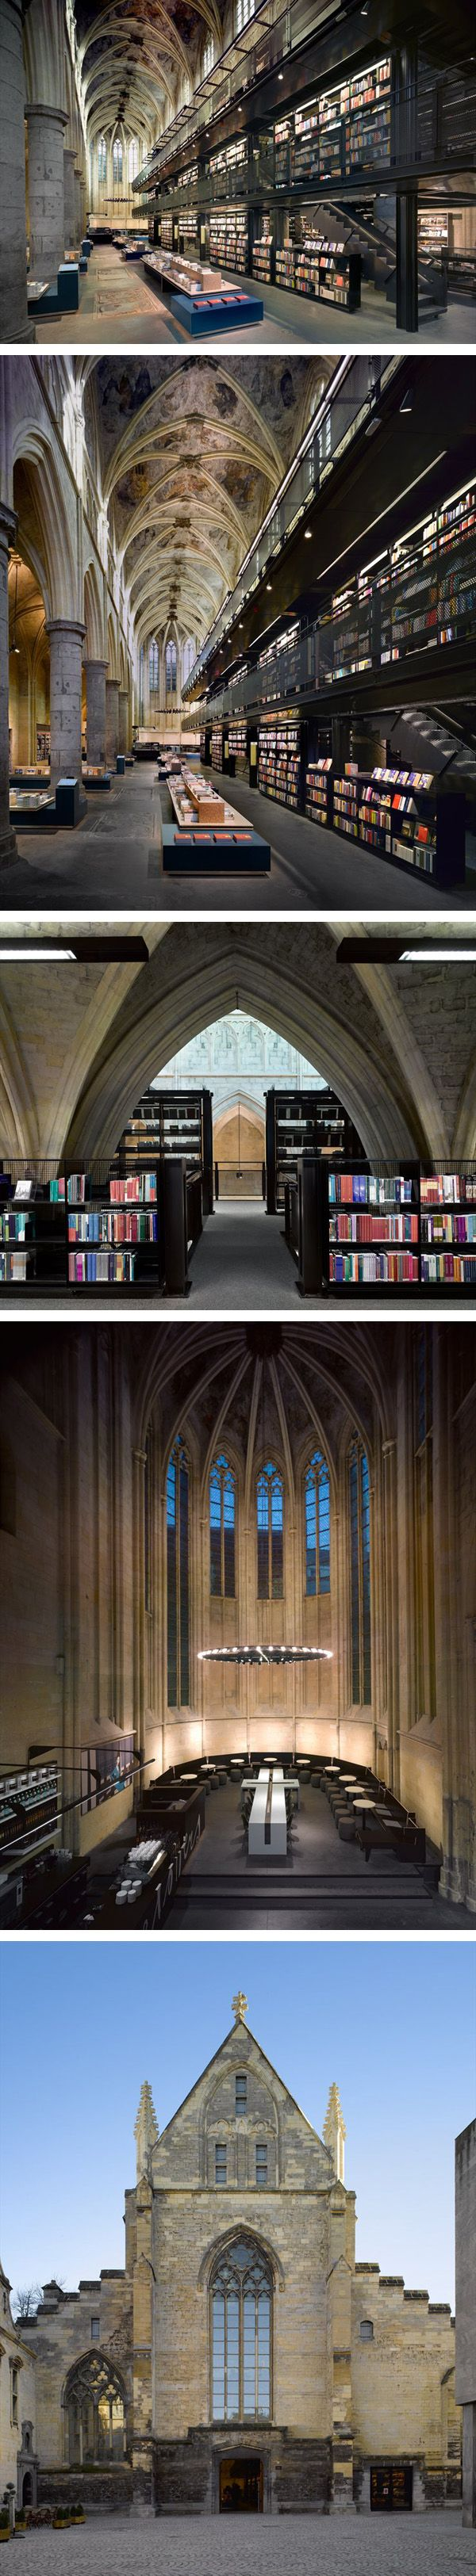 Selexyz Dominicaner Bookstore, Maastricht, Netherlands. Merkx+Girod Architecten. In Maastricht, the location demanded a completely different approach; the development of 1200m2 shopping space in an available area of 750m2 floor space. The solution is a multi-level, monumental, black, walk-in bookcase situated asymmetrically in the church. The project won the 2007 Lensvelt de Architect interior design award.